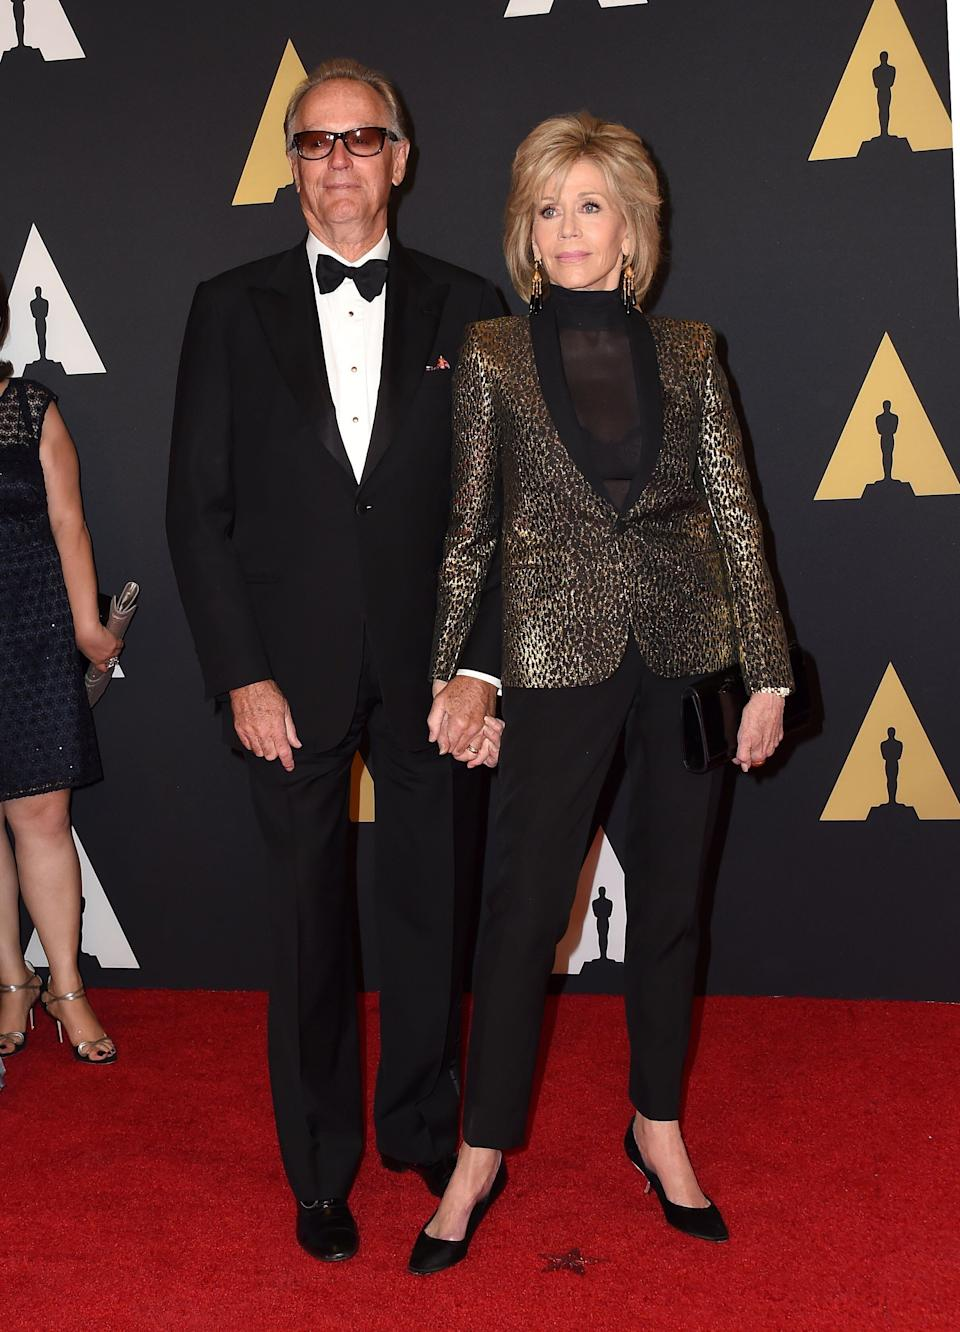 Peter Fonda and Jane Fonda attend the seventh annual Governors Awards honoring Spike Lee, Gena Rowlands and Debbie Reynolds, in Hollywood, California, on Nov. 14, 2015. (Photo: VALERIE MACON via Getty Images)